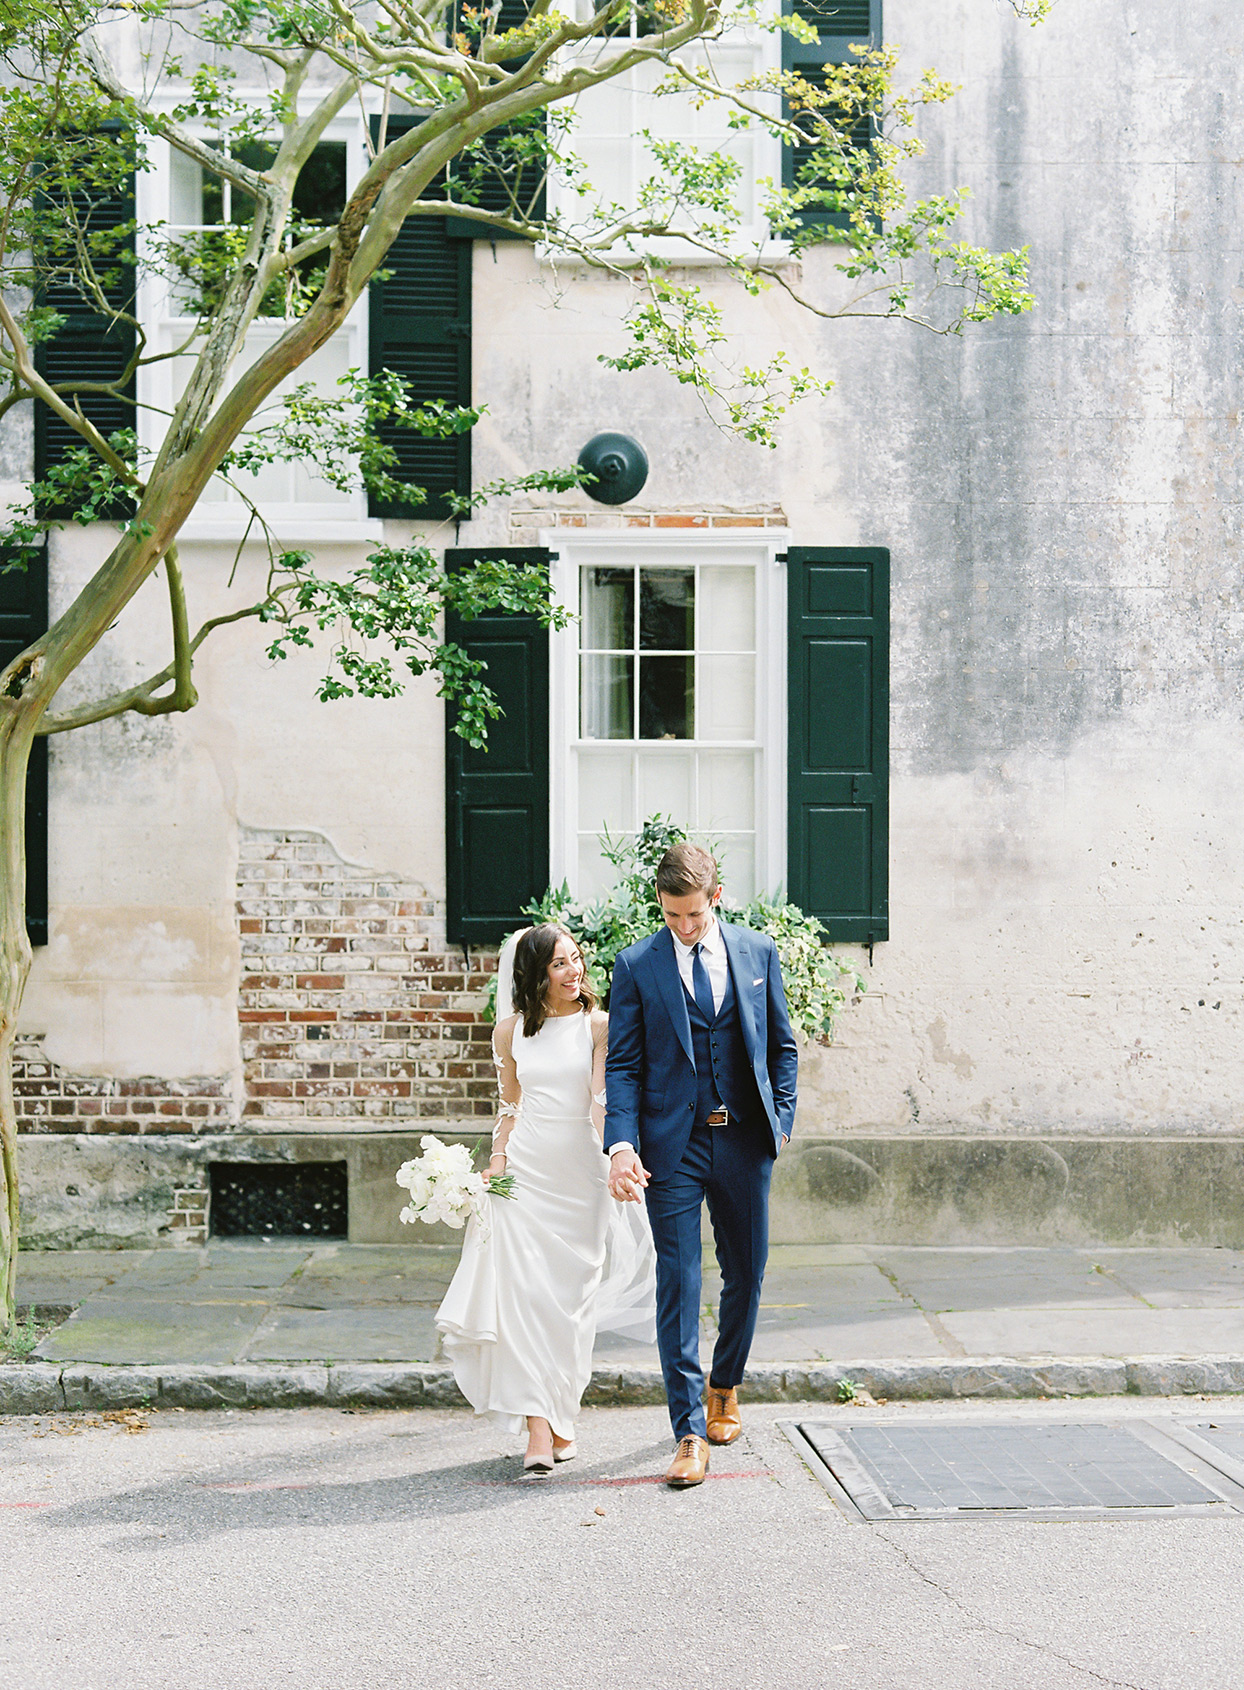 This Couple Celebrated Their Charleston Nuptials on the Porch of an 18th-Century Estate